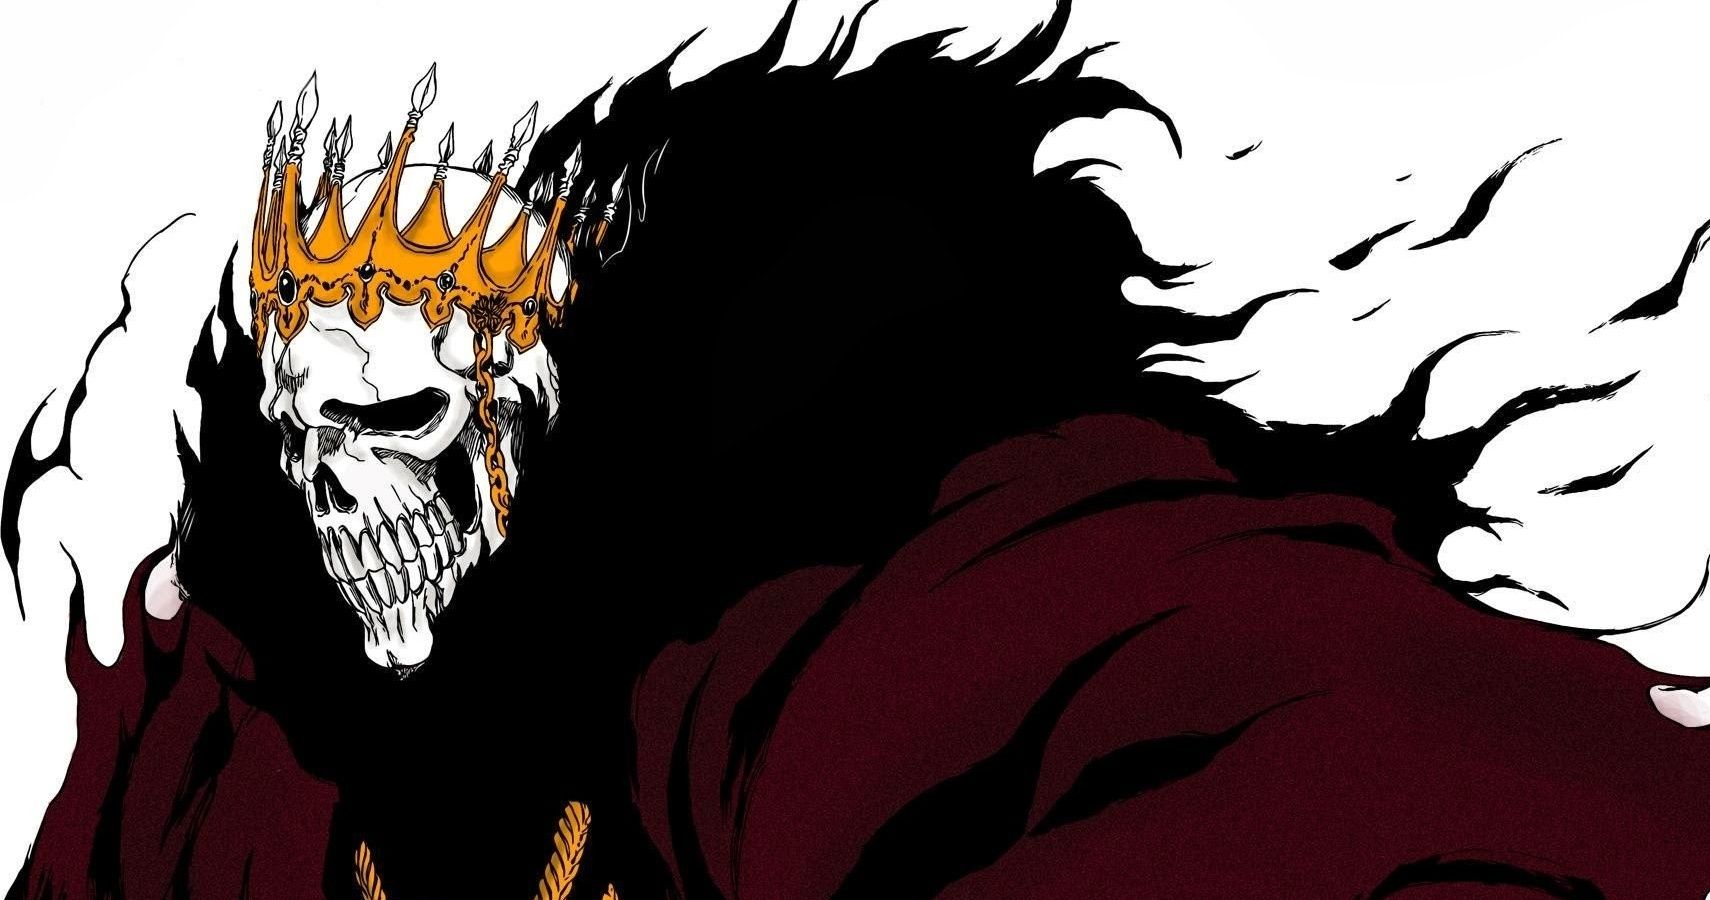 Bleach: 10 Things You Should Know About the Espadas | CBR